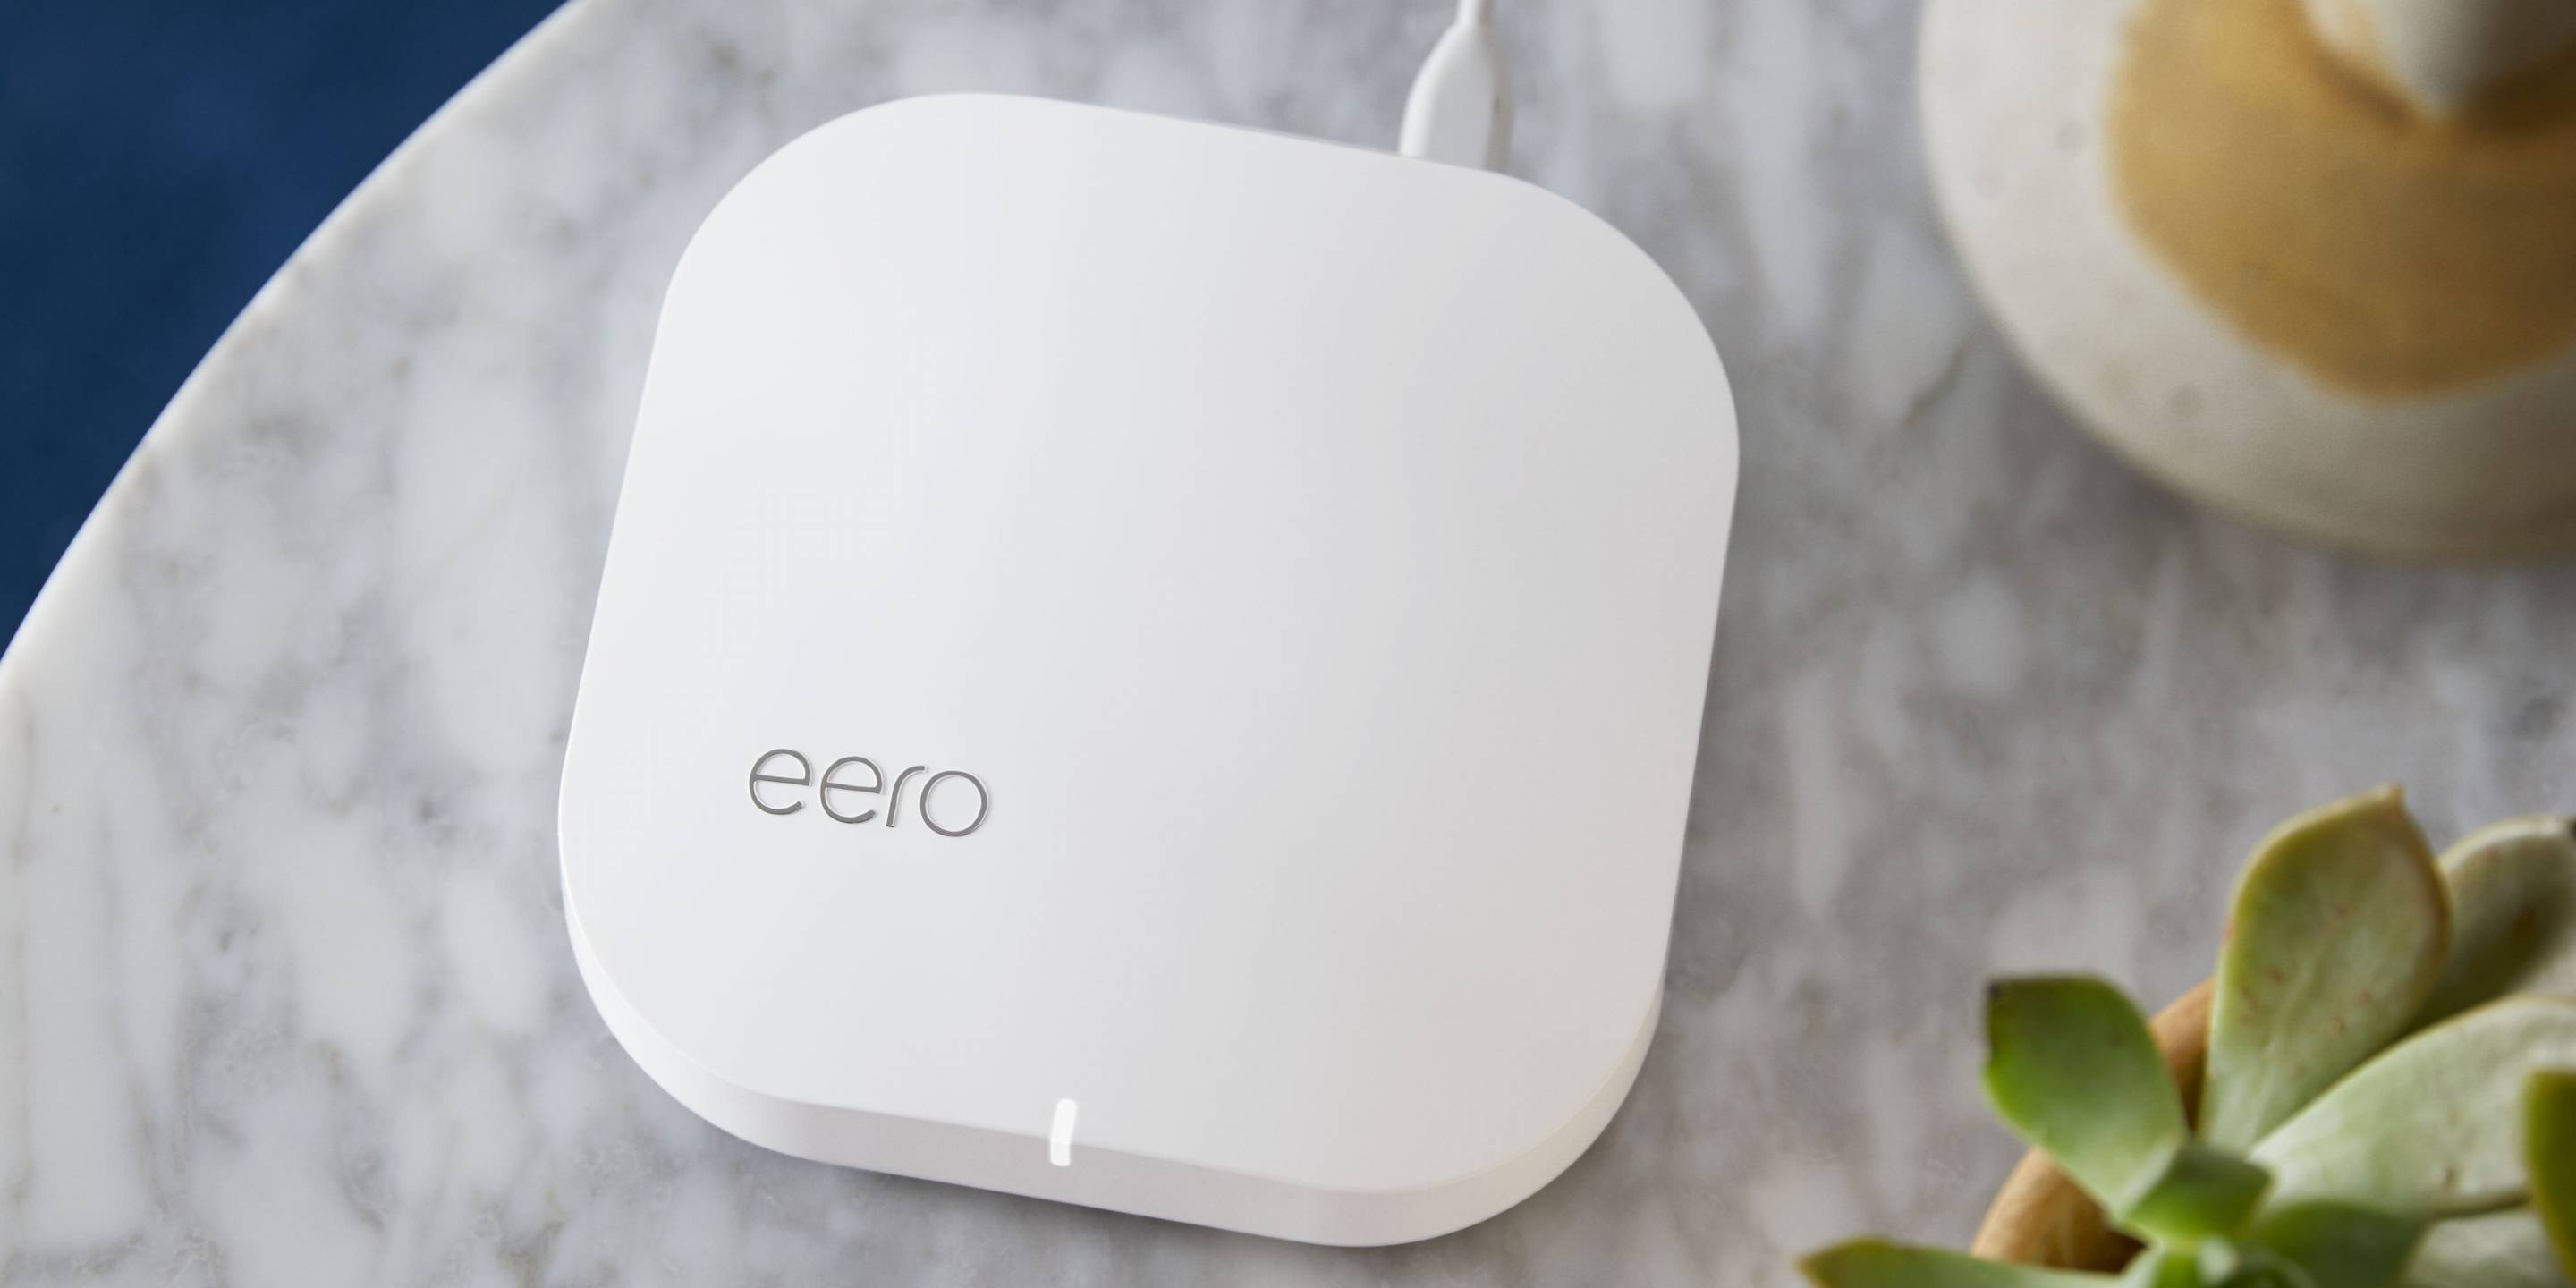 Amazon is acquiring wifi startup Eero, which makes mesh routers, works with smart home network devices such as Amazon Echo, powered by Alexa.